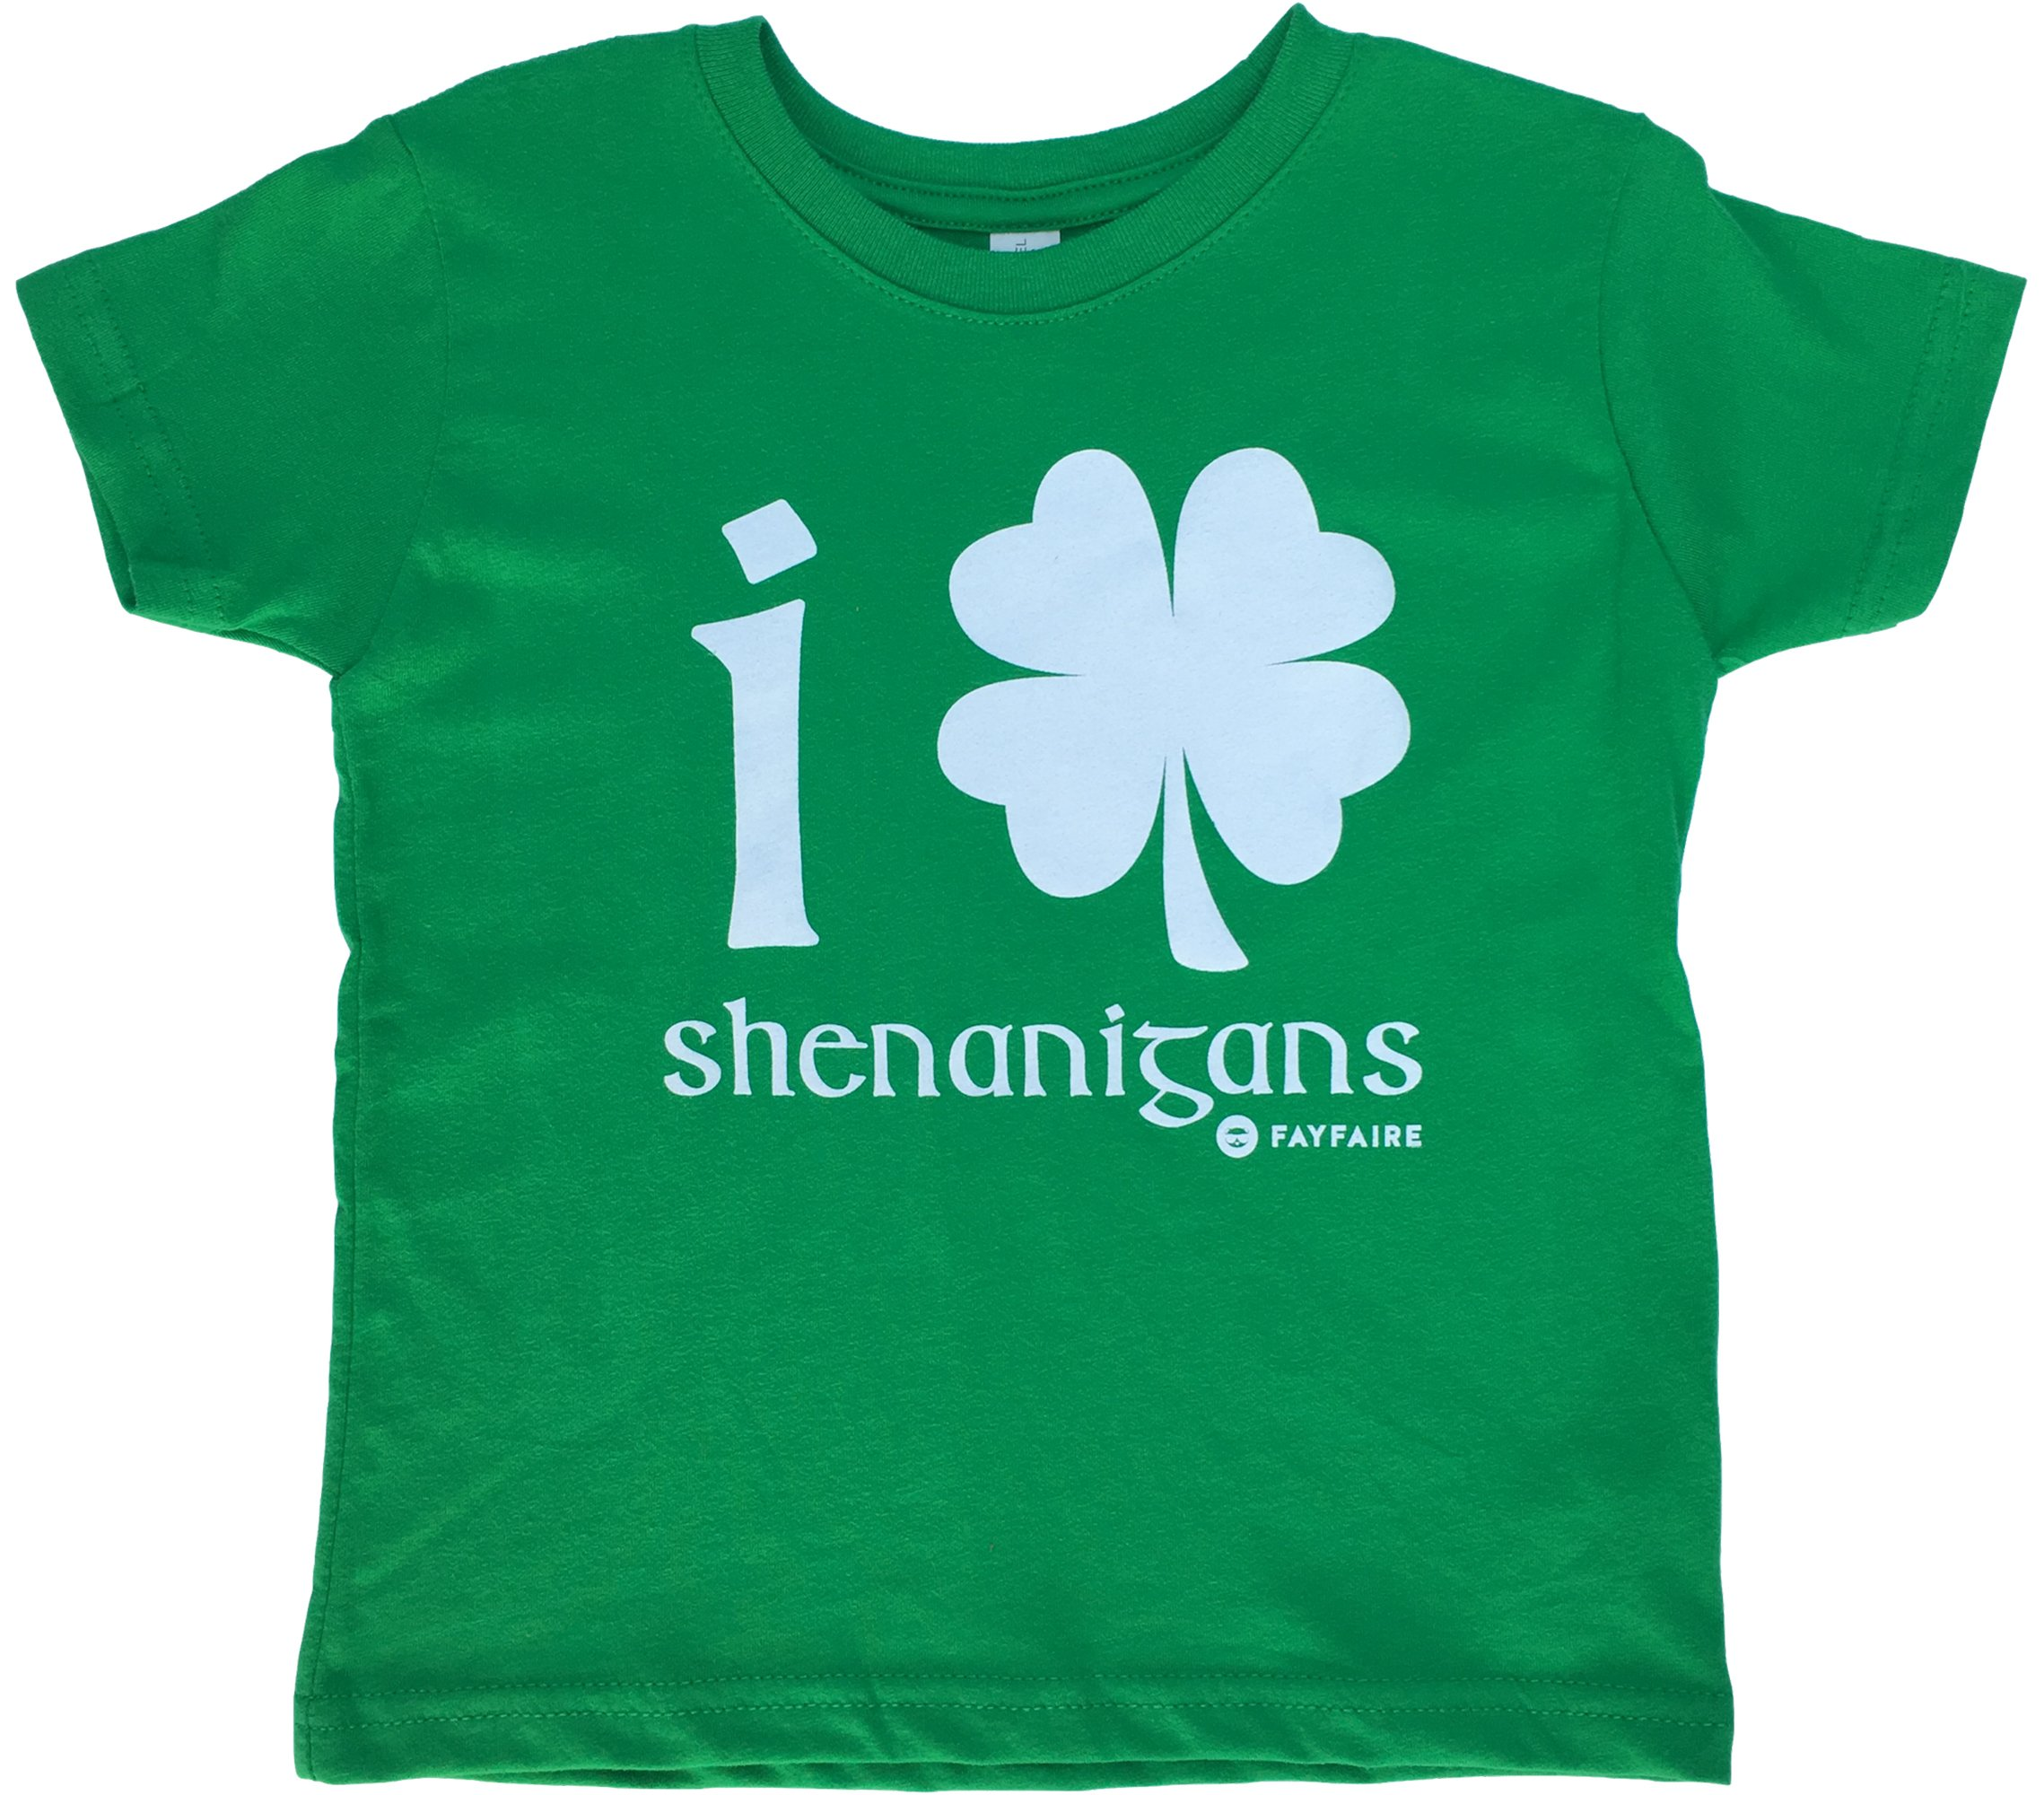 Fayfaire Toddler St.Patricks Day Shirt: Boutique Quality Adorable Shamrock Shenanigans 3T